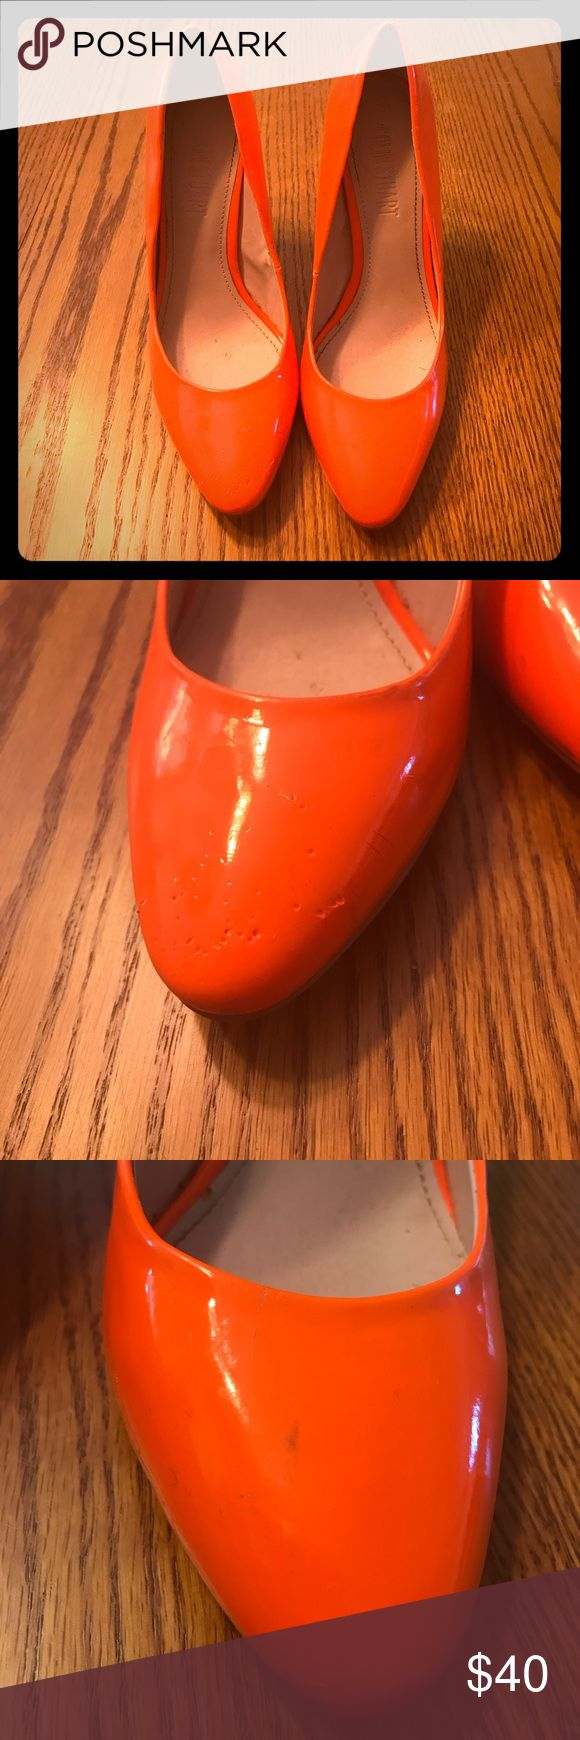 Colin Stuart Neon Orange HTF Heels 👠!!! Previously loved Colin Stuart Neon Orange Size 7 Heels!!! Still a ton of life left in these stunning heels 😍😍😍 Feel free to make me an offer !! Colin Stuart Shoes Heels